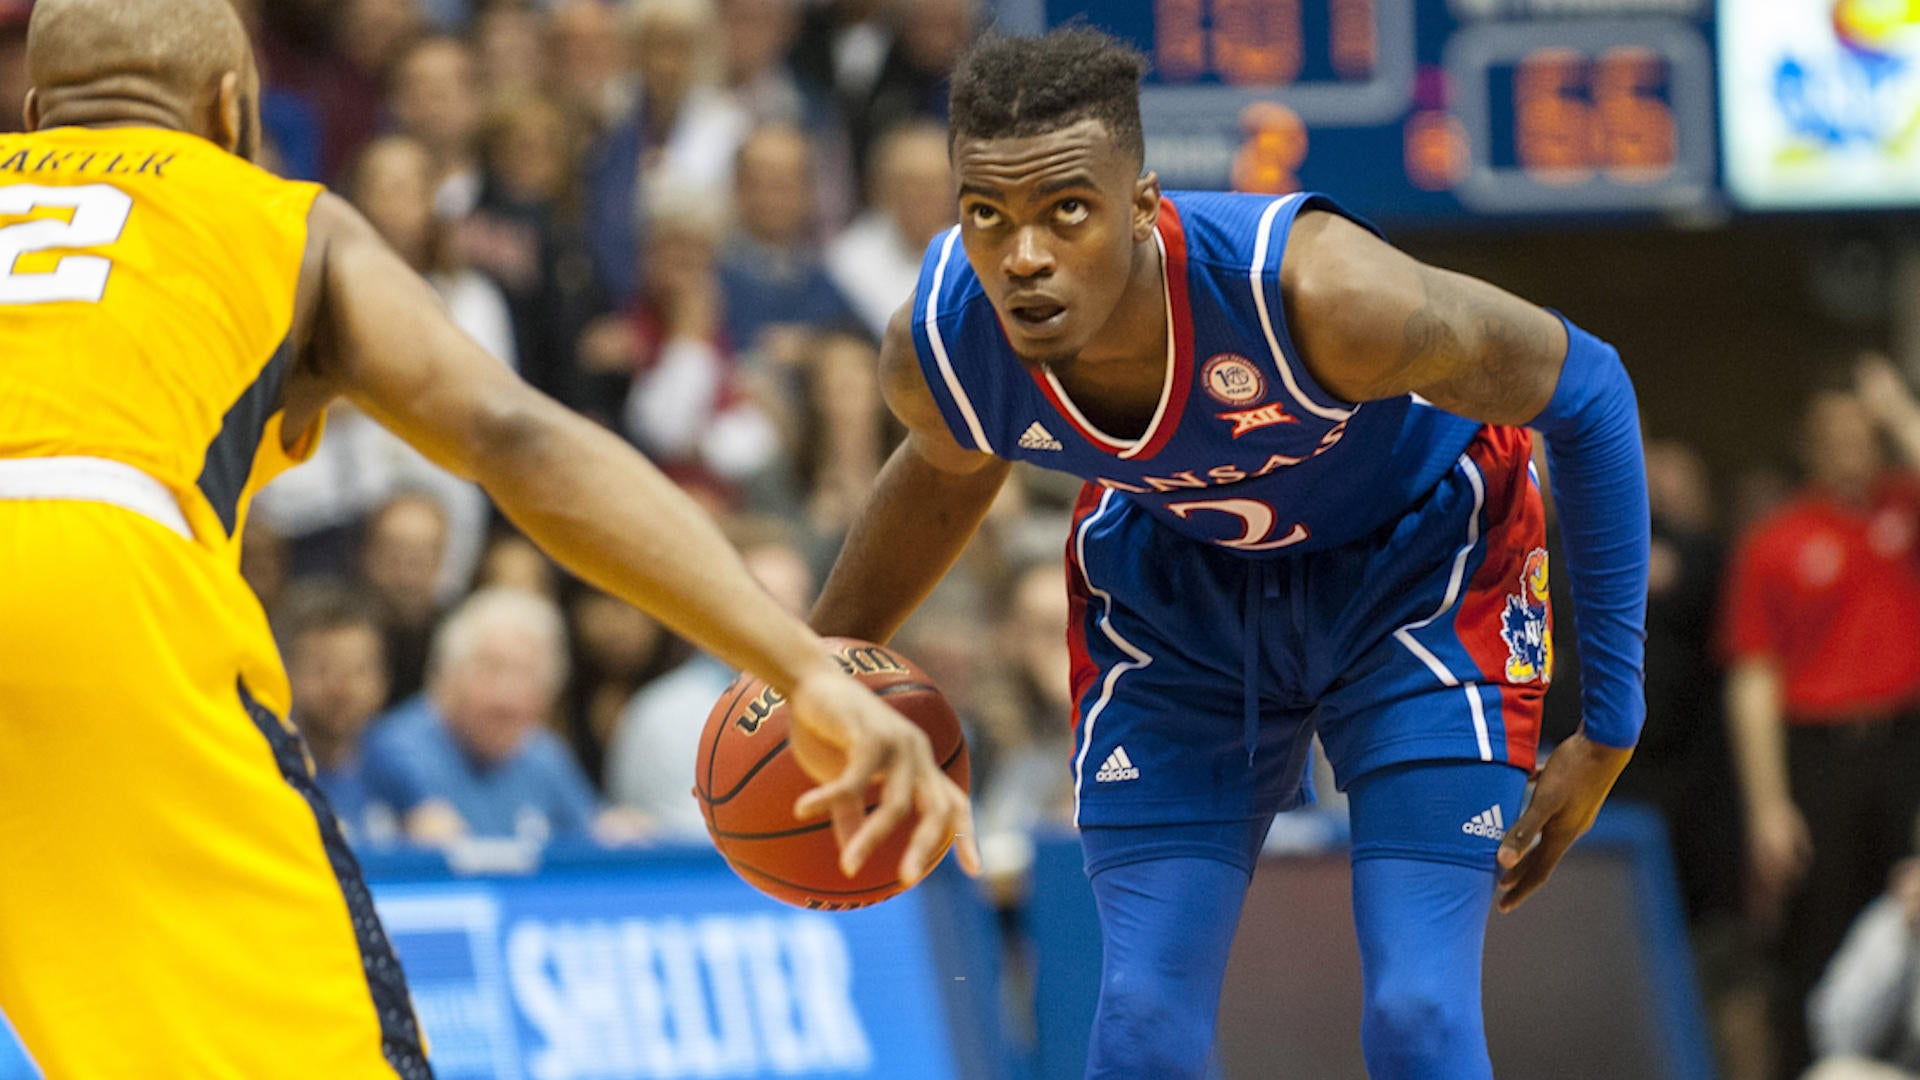 Kansas Suddenly Looks To Be Cruising To Its 14th Consecutive Big 12 Championship